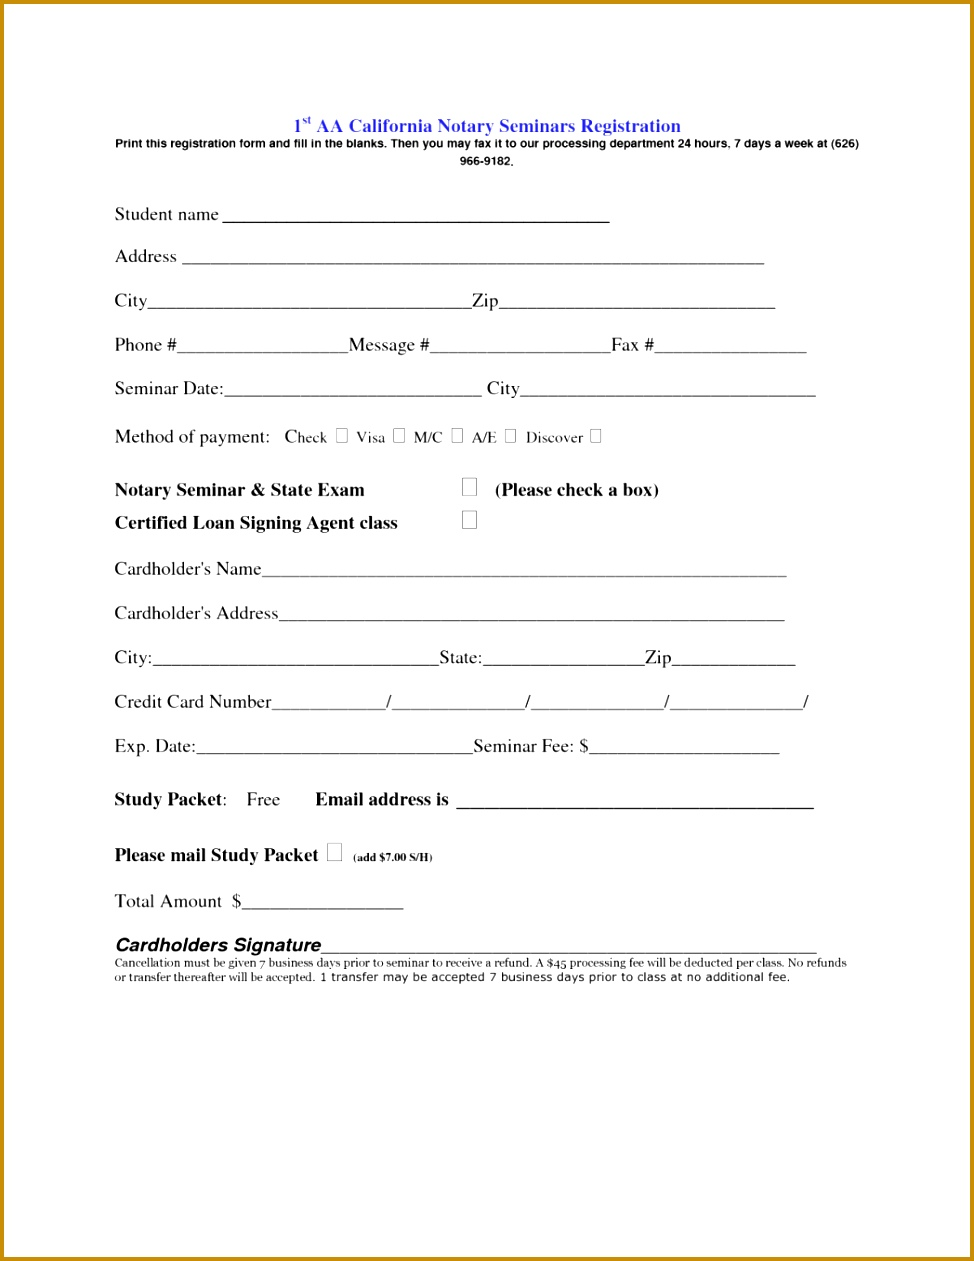 3 Seminar Registration Form Template Word Fabtemplatez